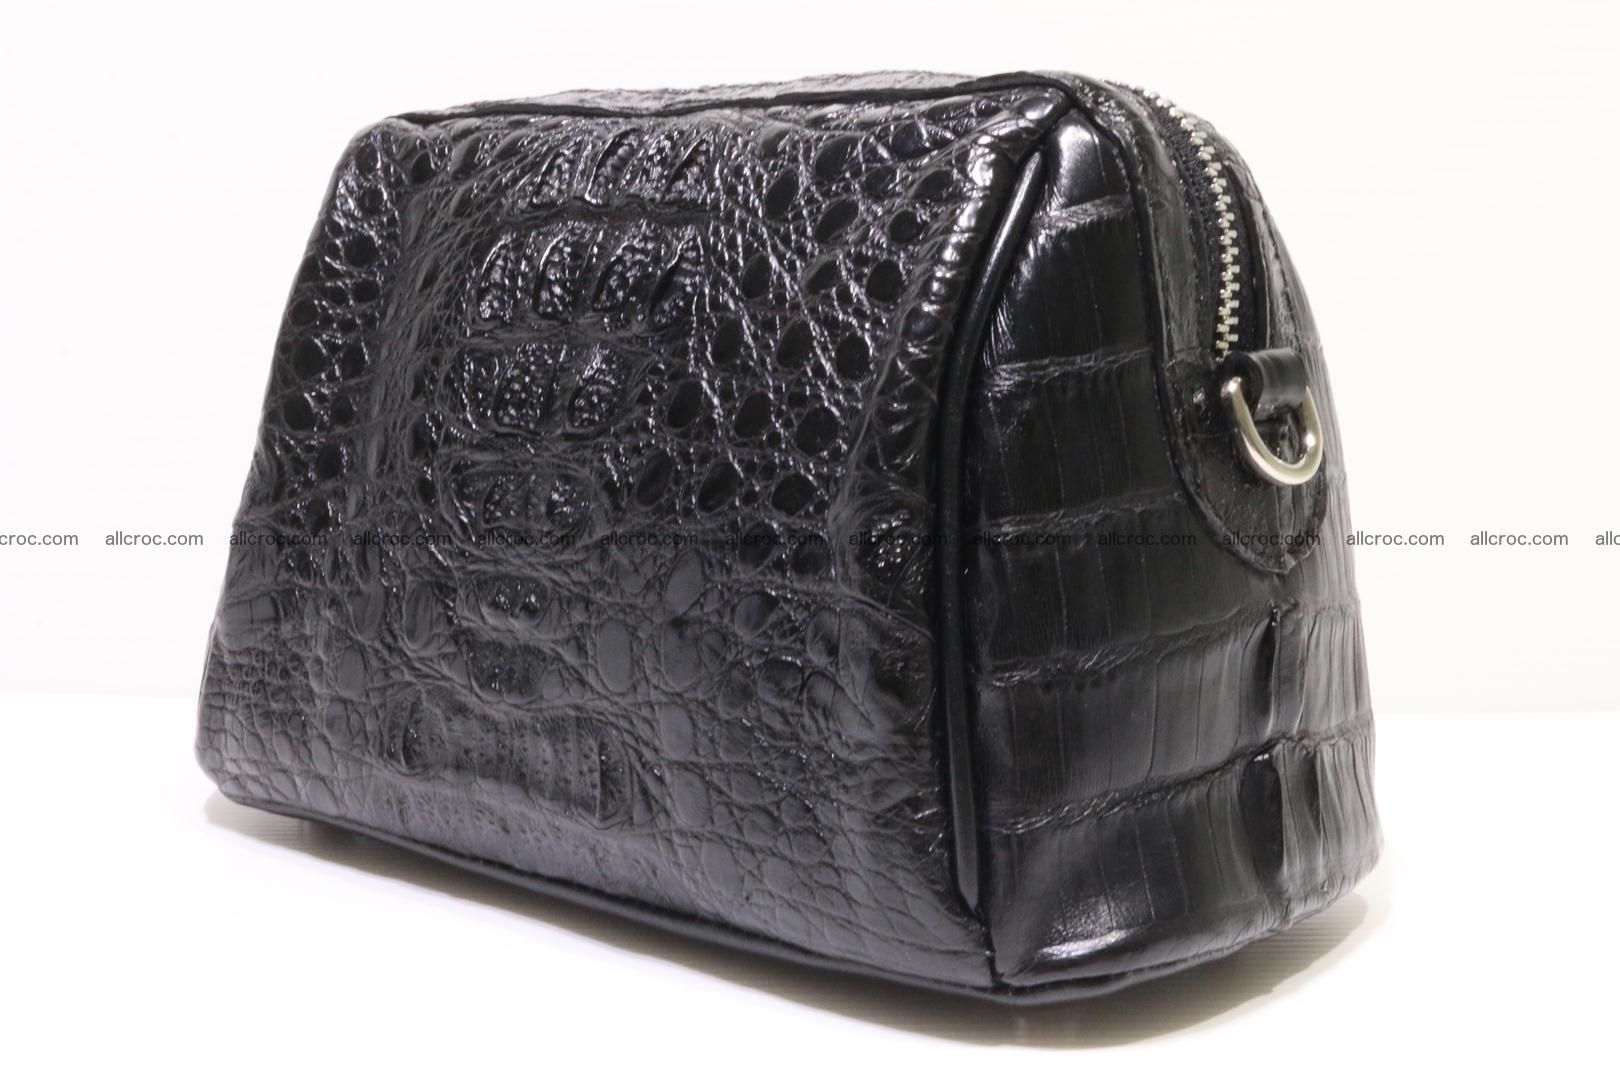 women's crocodile bag 042 Foto 5